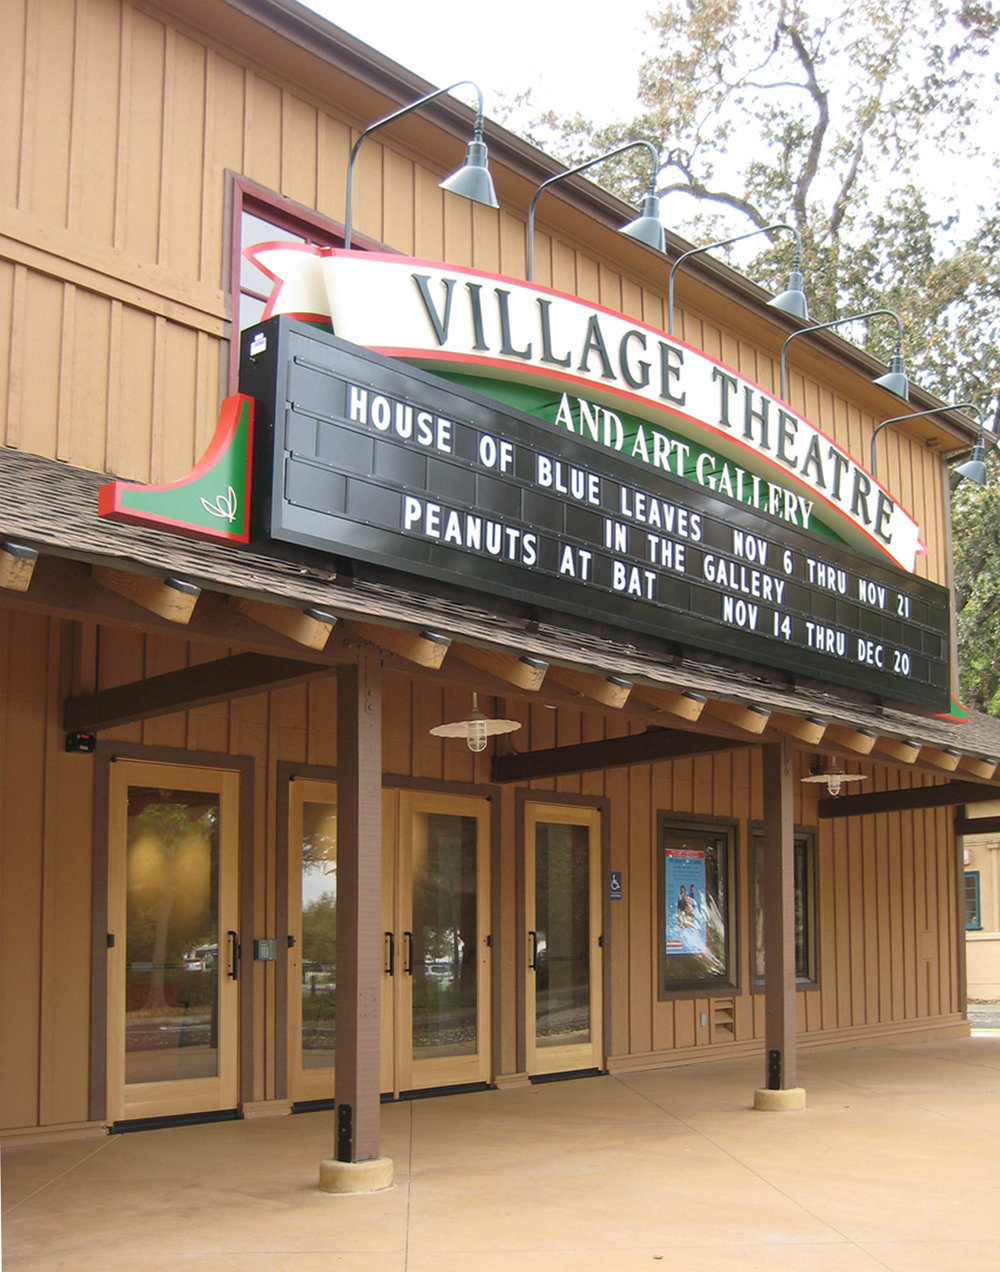 VillageTheater Exterior.jpg